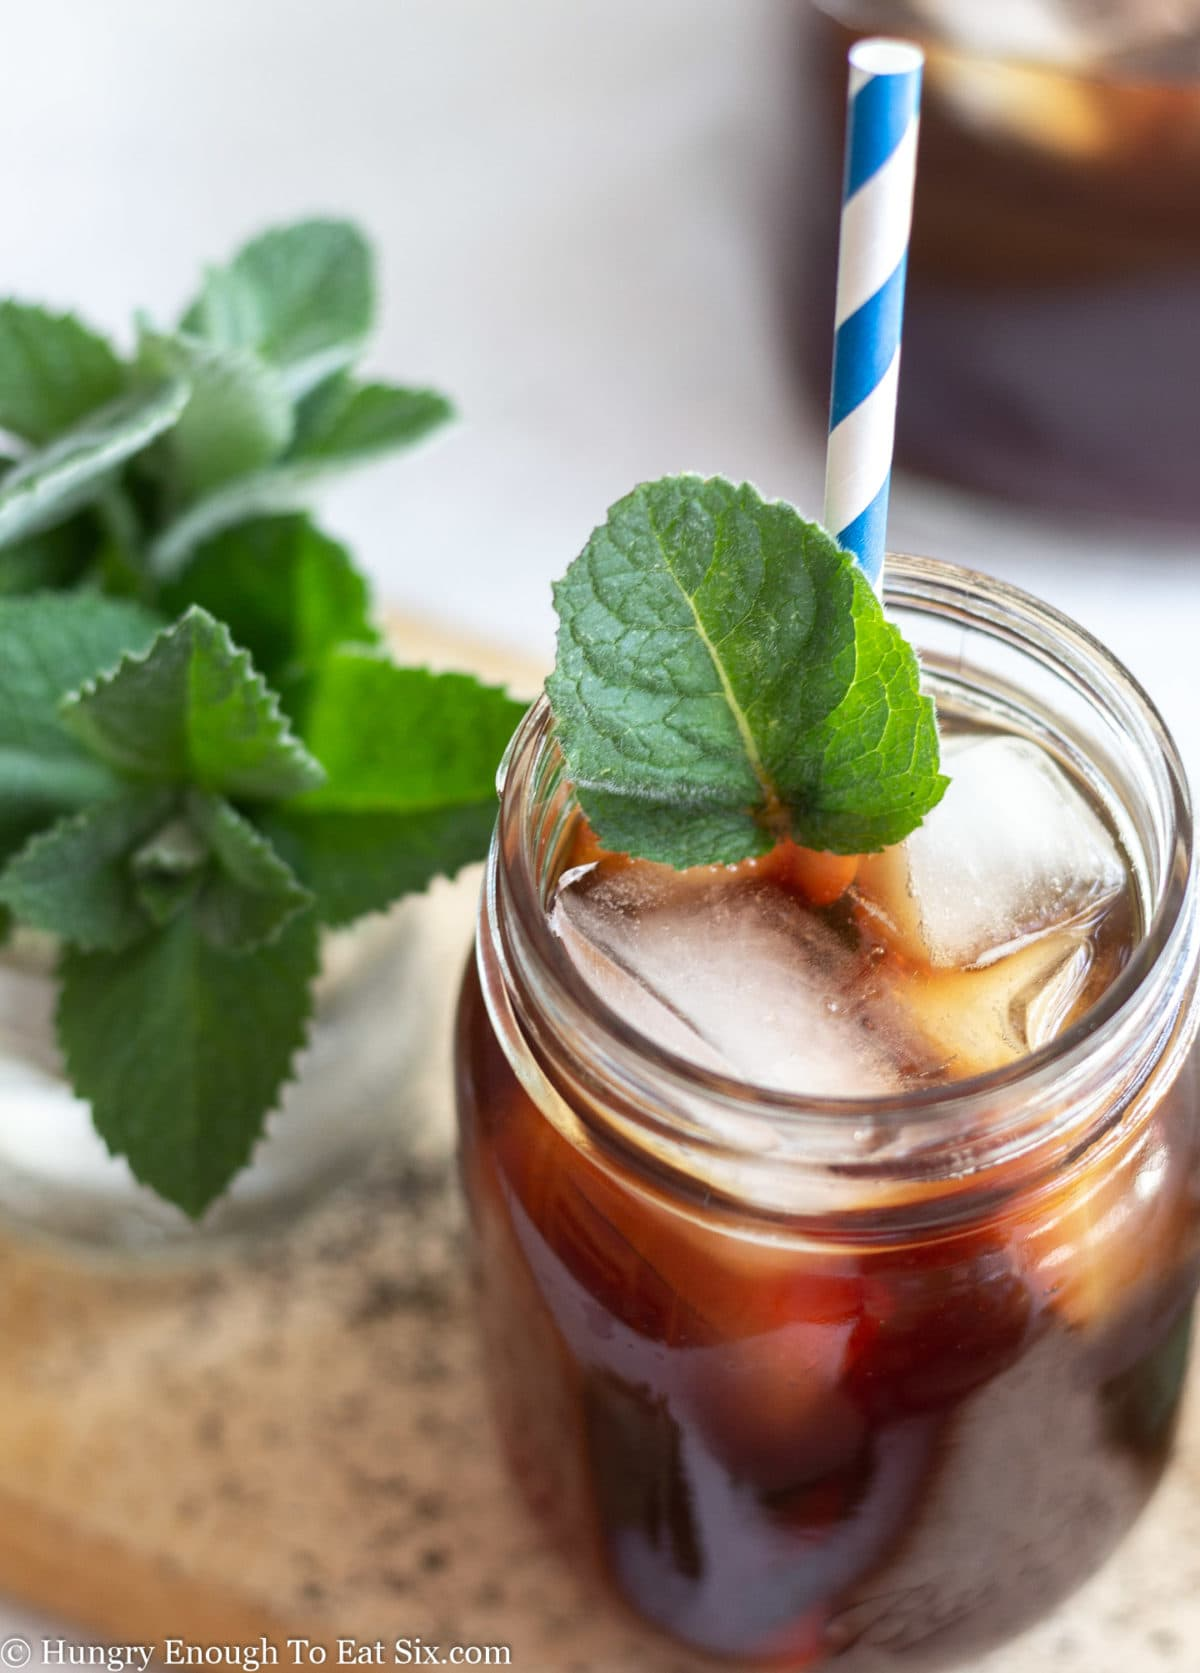 Mint leaf garnish on a mason glass jar of iced tea.